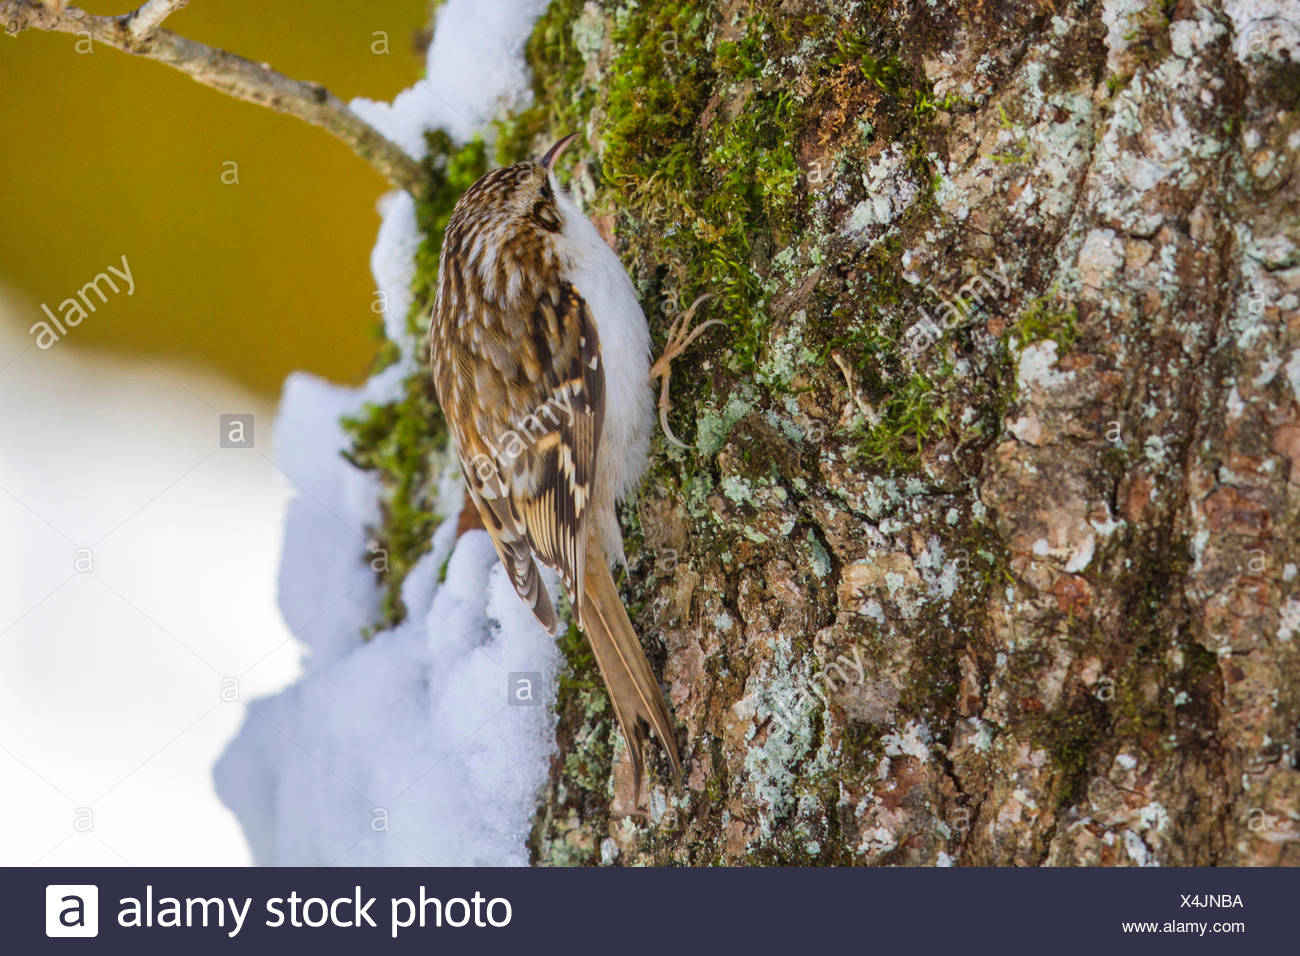 common treecreeper (Certhia familiaris), searching food at an oak in winter, Germany, Bavaria - Stock Image